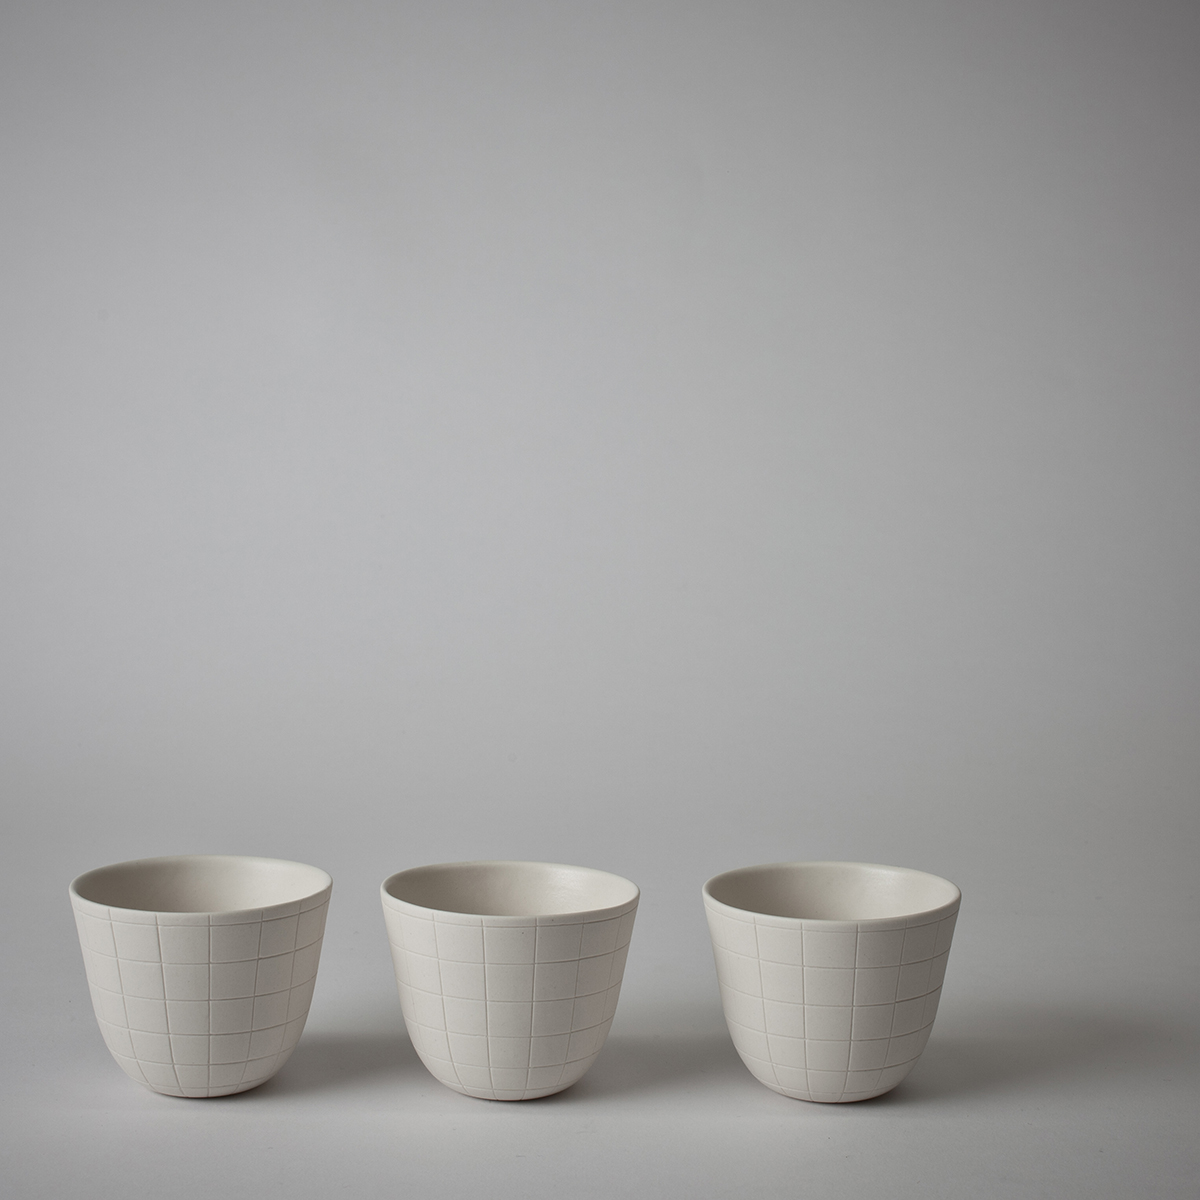 Sucabaruca coffee set by Luca Nichetto for Mjolk :017